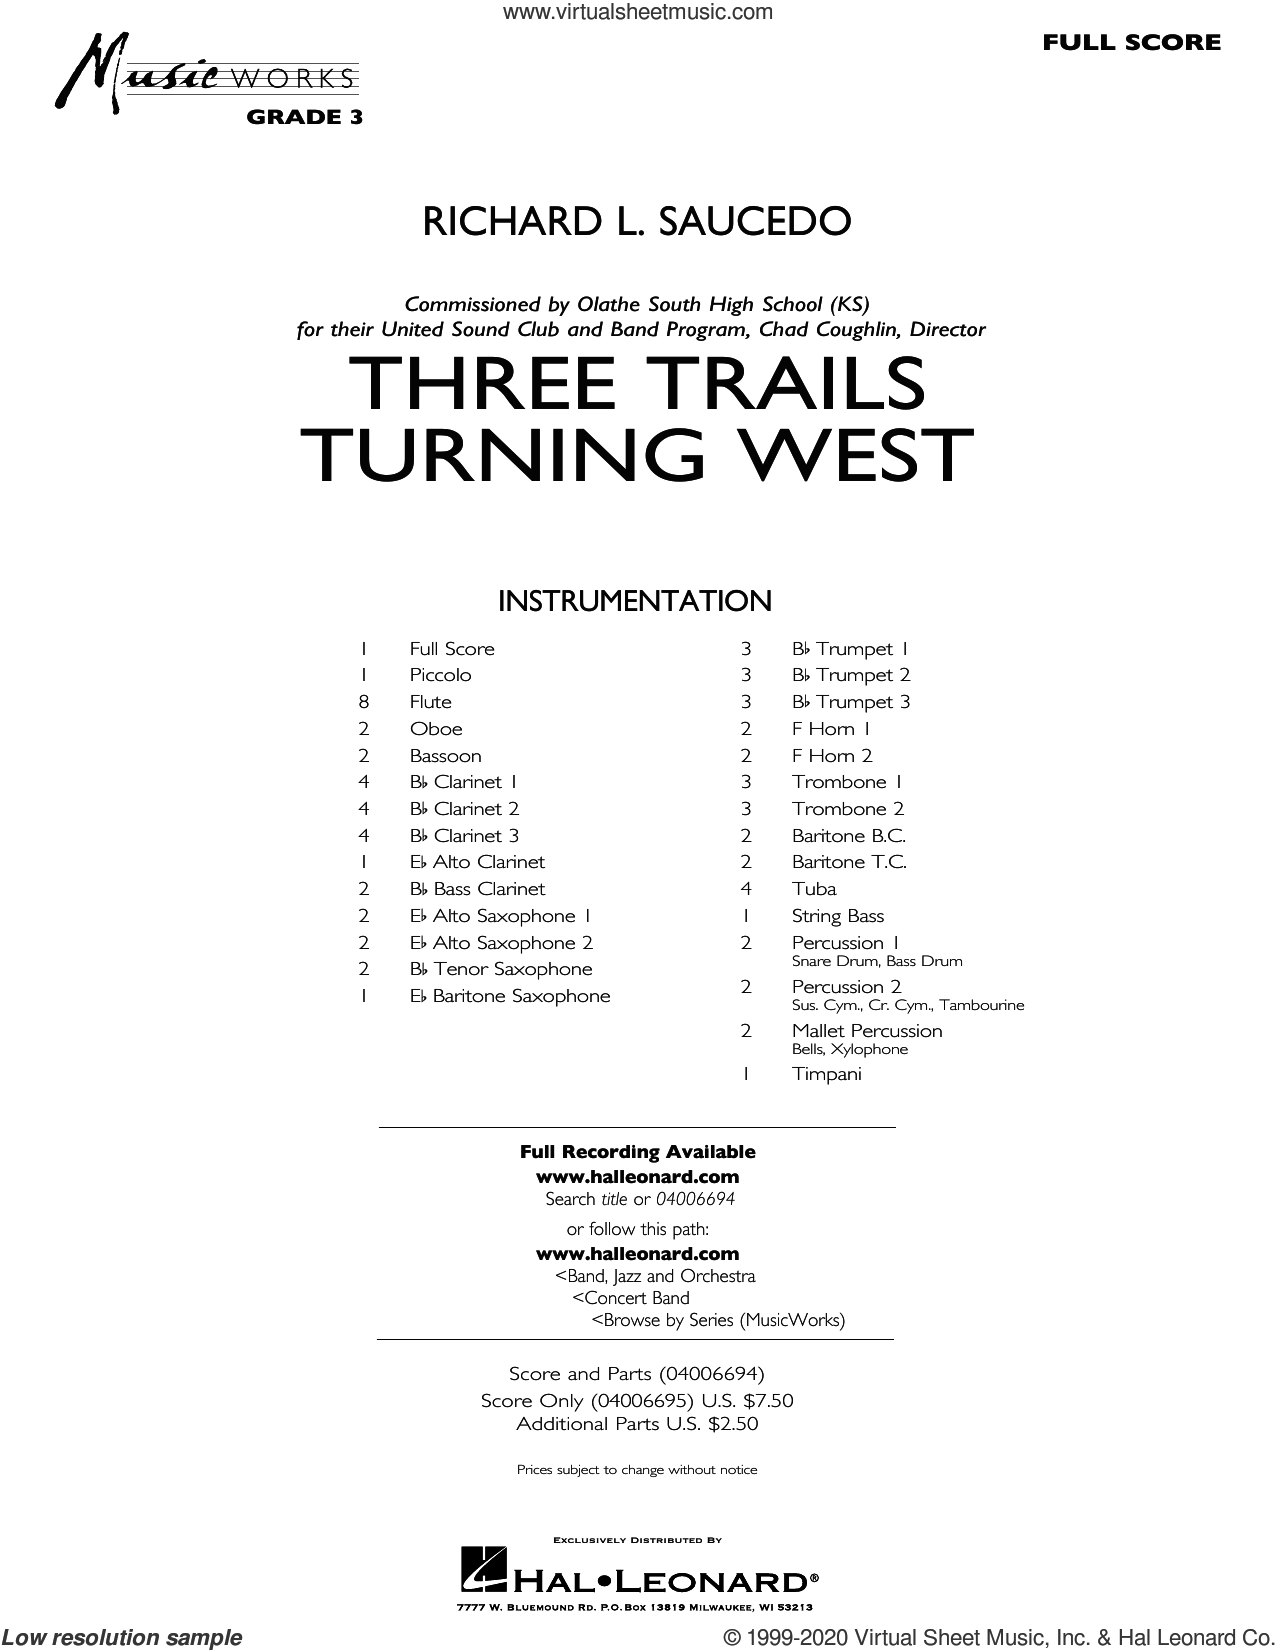 Three Trails Turning West (COMPLETE) sheet music for concert band by Richard L. Saucedo, intermediate skill level